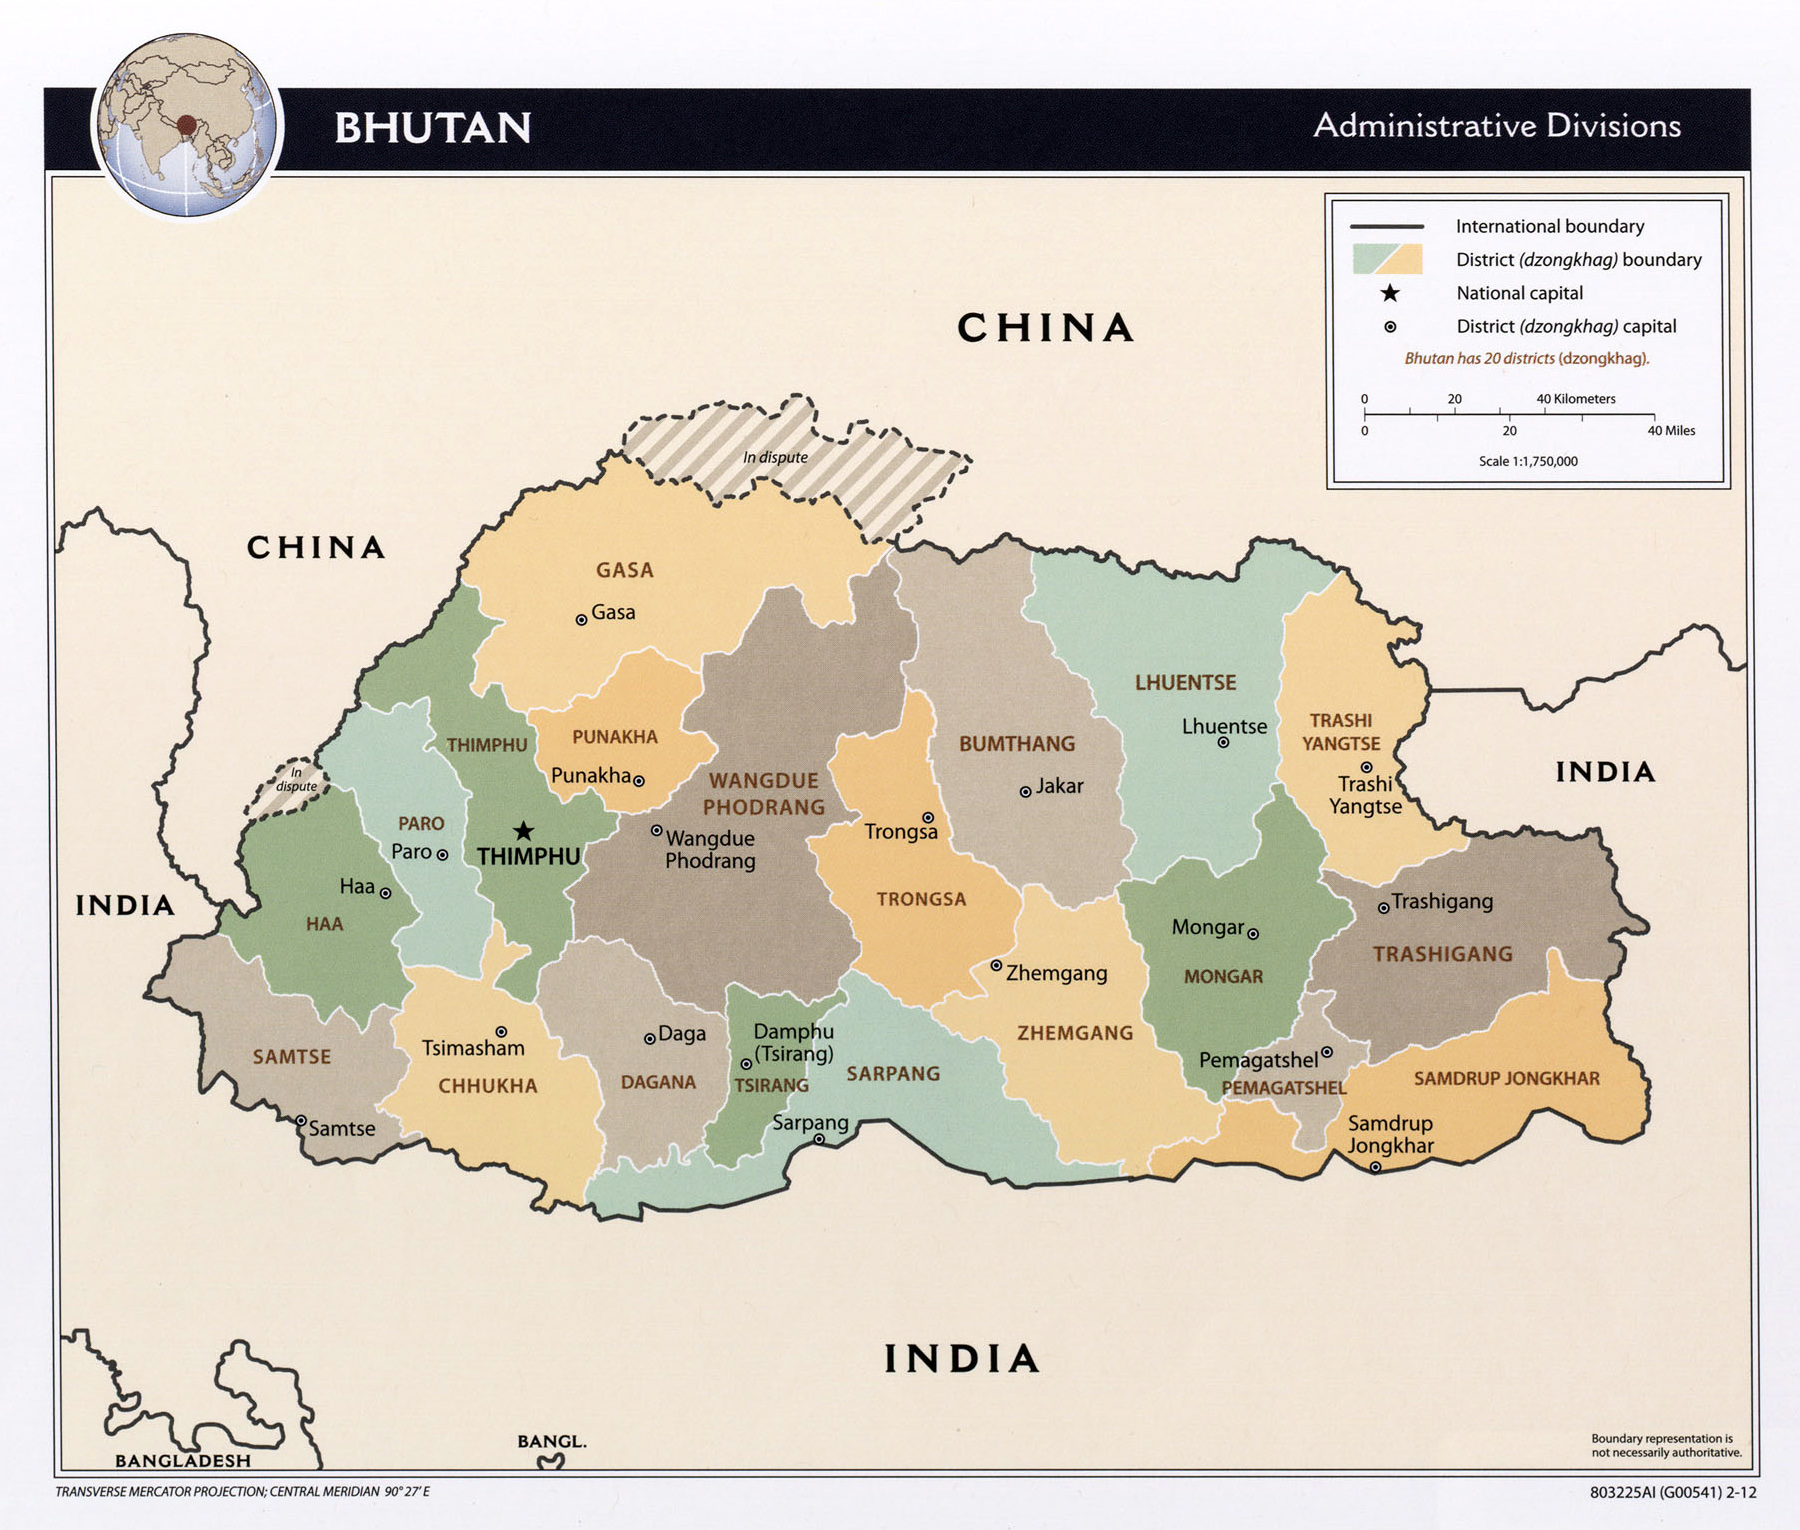 Bhutan Maps, Bhutan on World Map, Bhutan Location, Political ... on map of chile, united states of america, map of india, map of peru, map of sri lanka, map of japan, map of nepal, map of myanmar, map of k2, jetsun pema, map of china, map of middle east, map of iraq, map of singapore, map of tibet, south asia, sri lanka, map of brunei, map of philippines, map of liechtenstein, map of bangladesh, map of turkey, map of himalayas, map of asia,